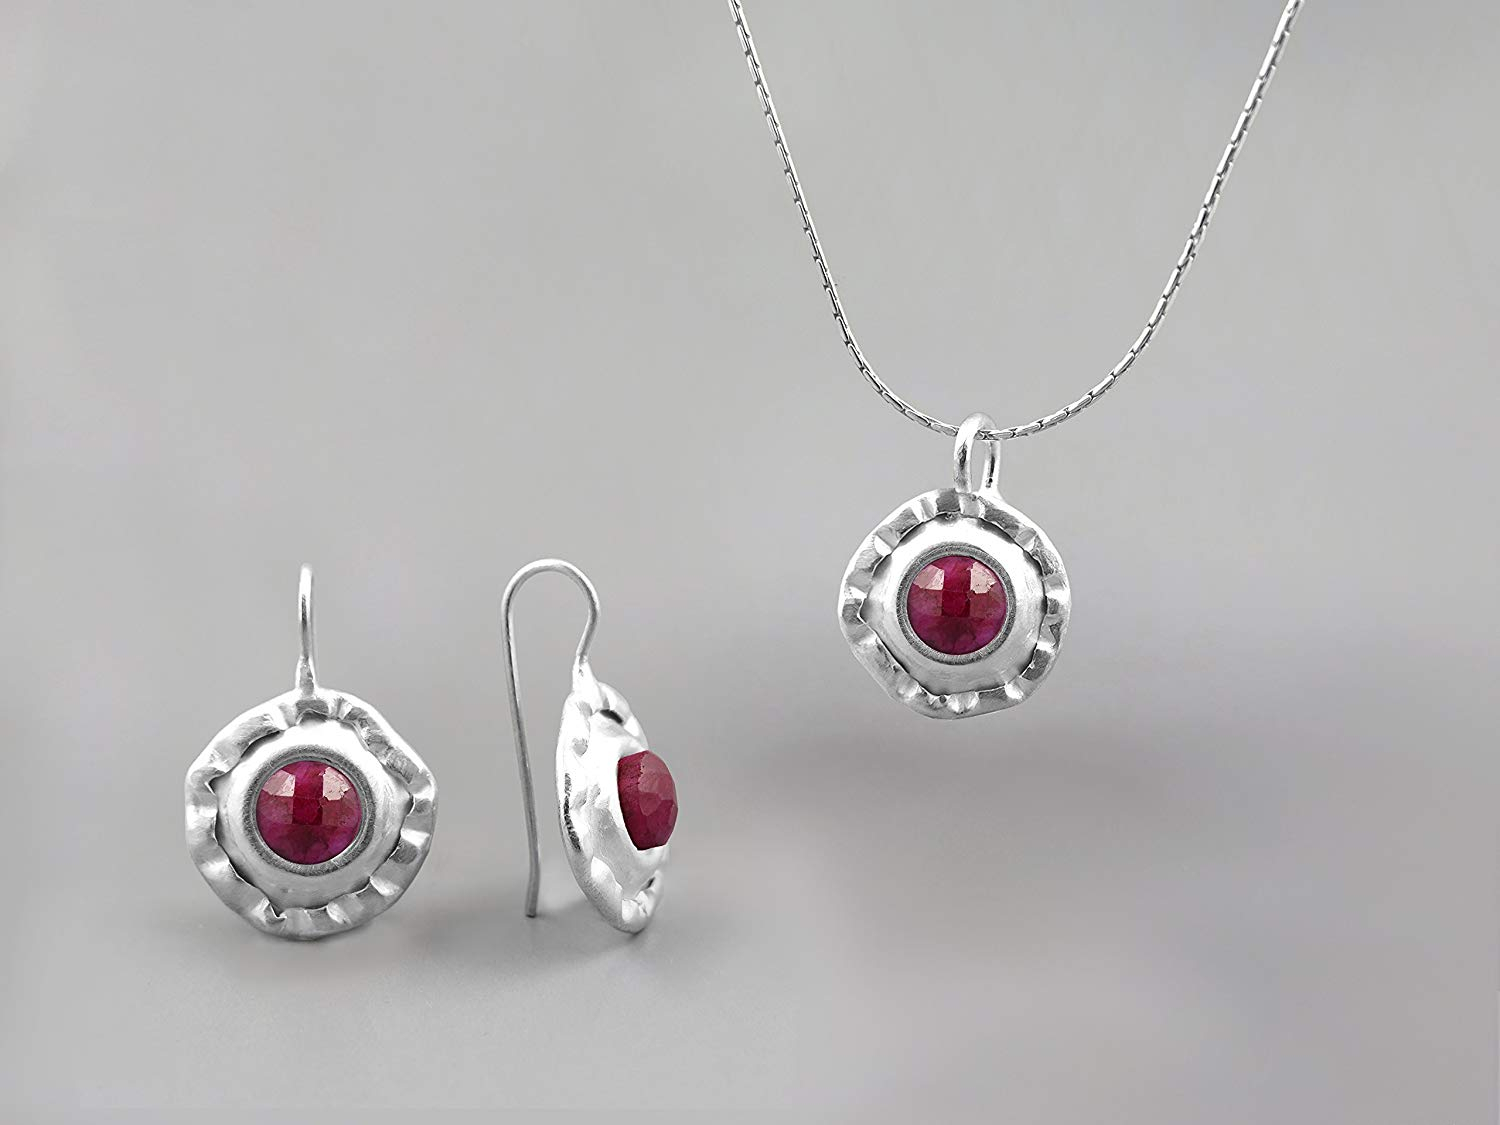 Cheap Ruby Jewelry Store, Find Ruby Jewelry Store Deals On Line At In Most Recently Released July Droplet Pendant, Synthetic Ruby Necklaces (Gallery 15 of 25)